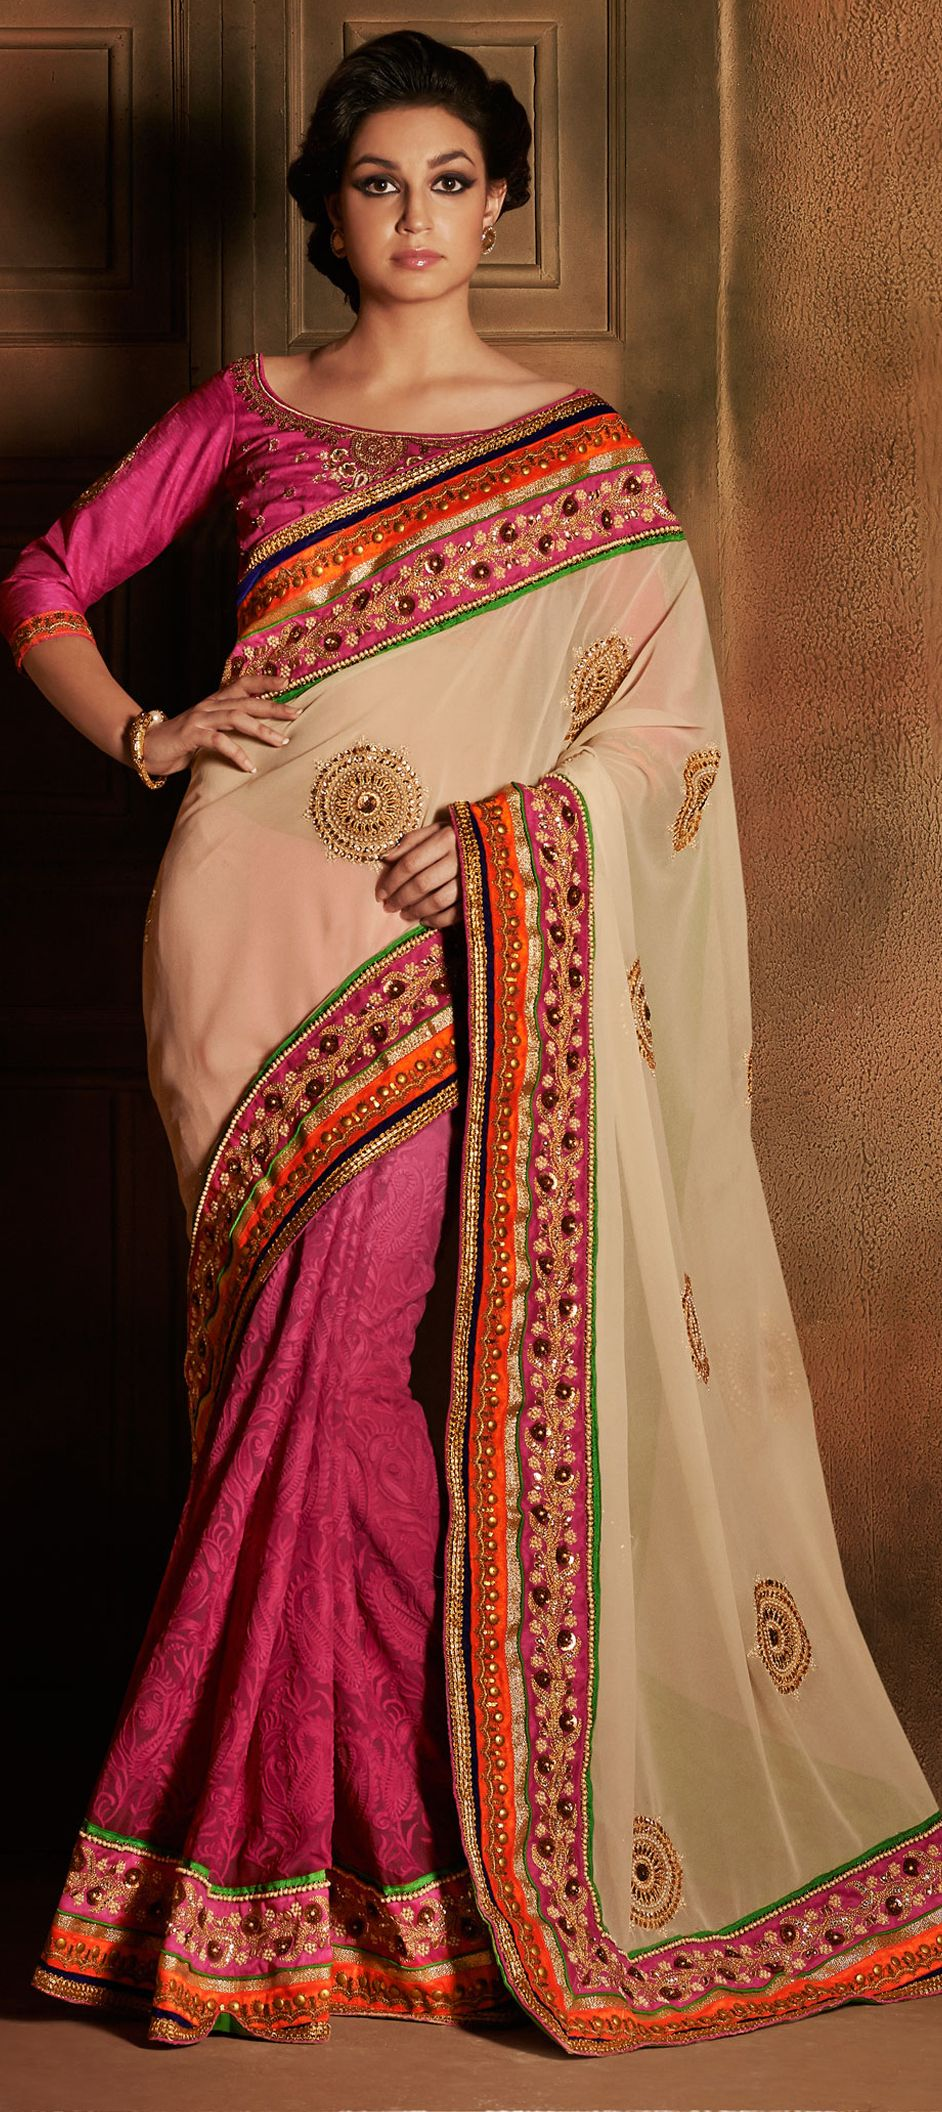 150378: Pink and Majenta, Beige and Brown color family Saree with ...